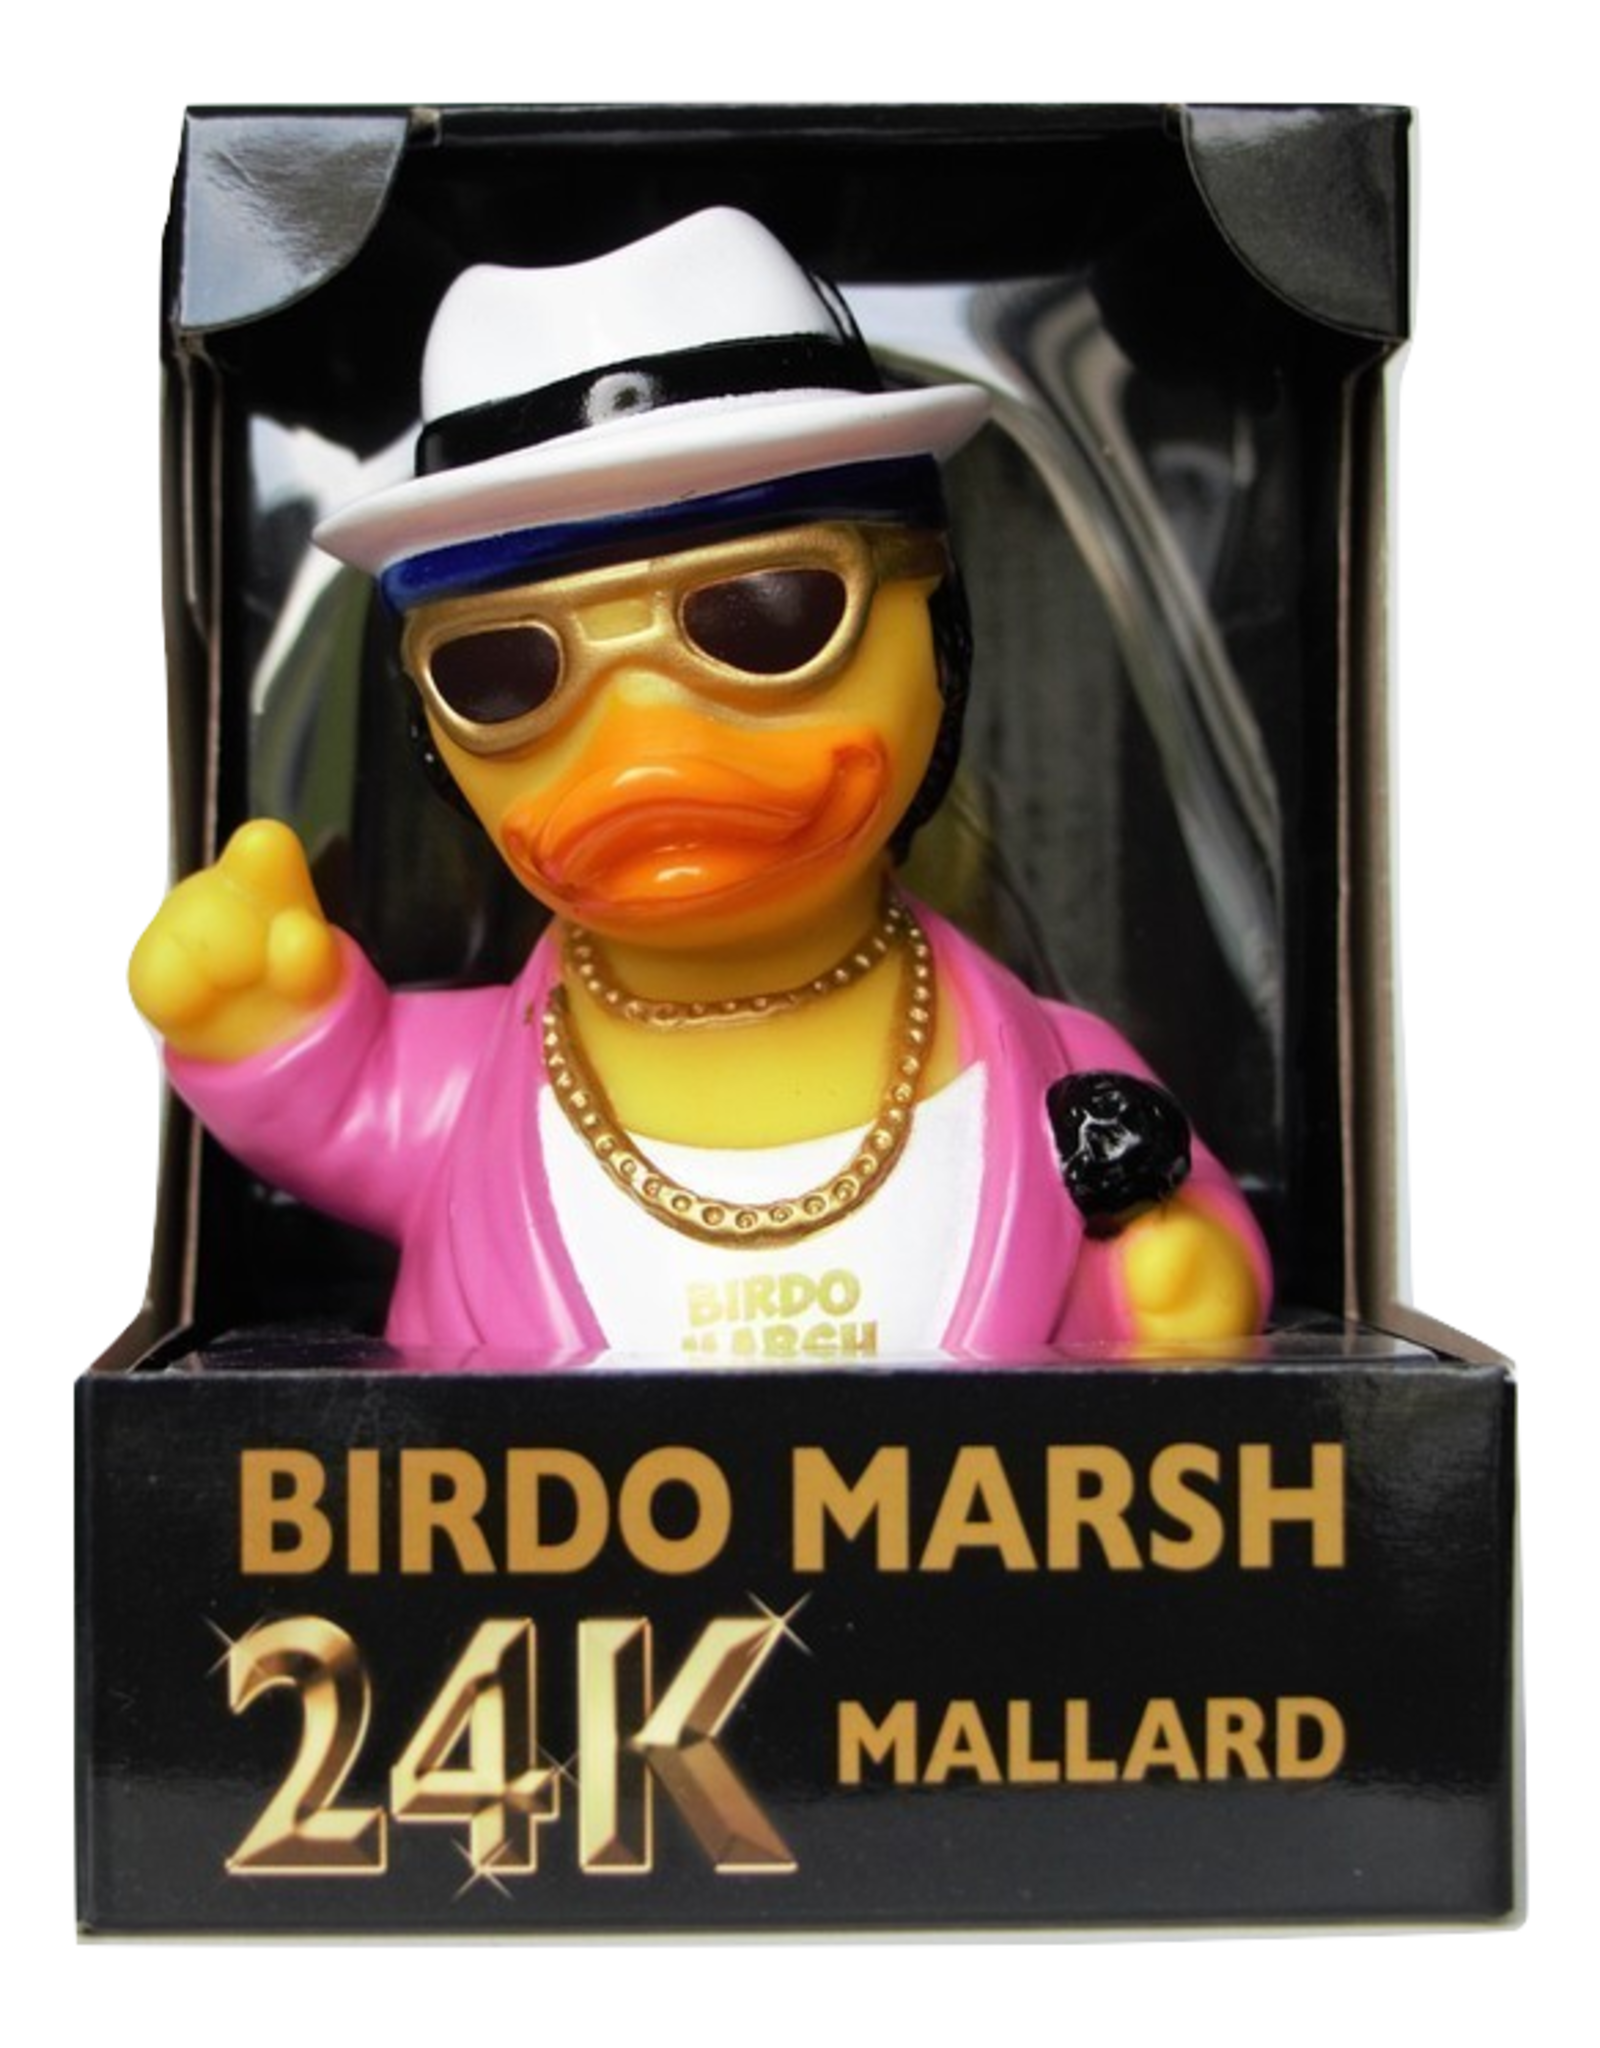 Birdo Marsh - 24K Mallard Rubber Duck